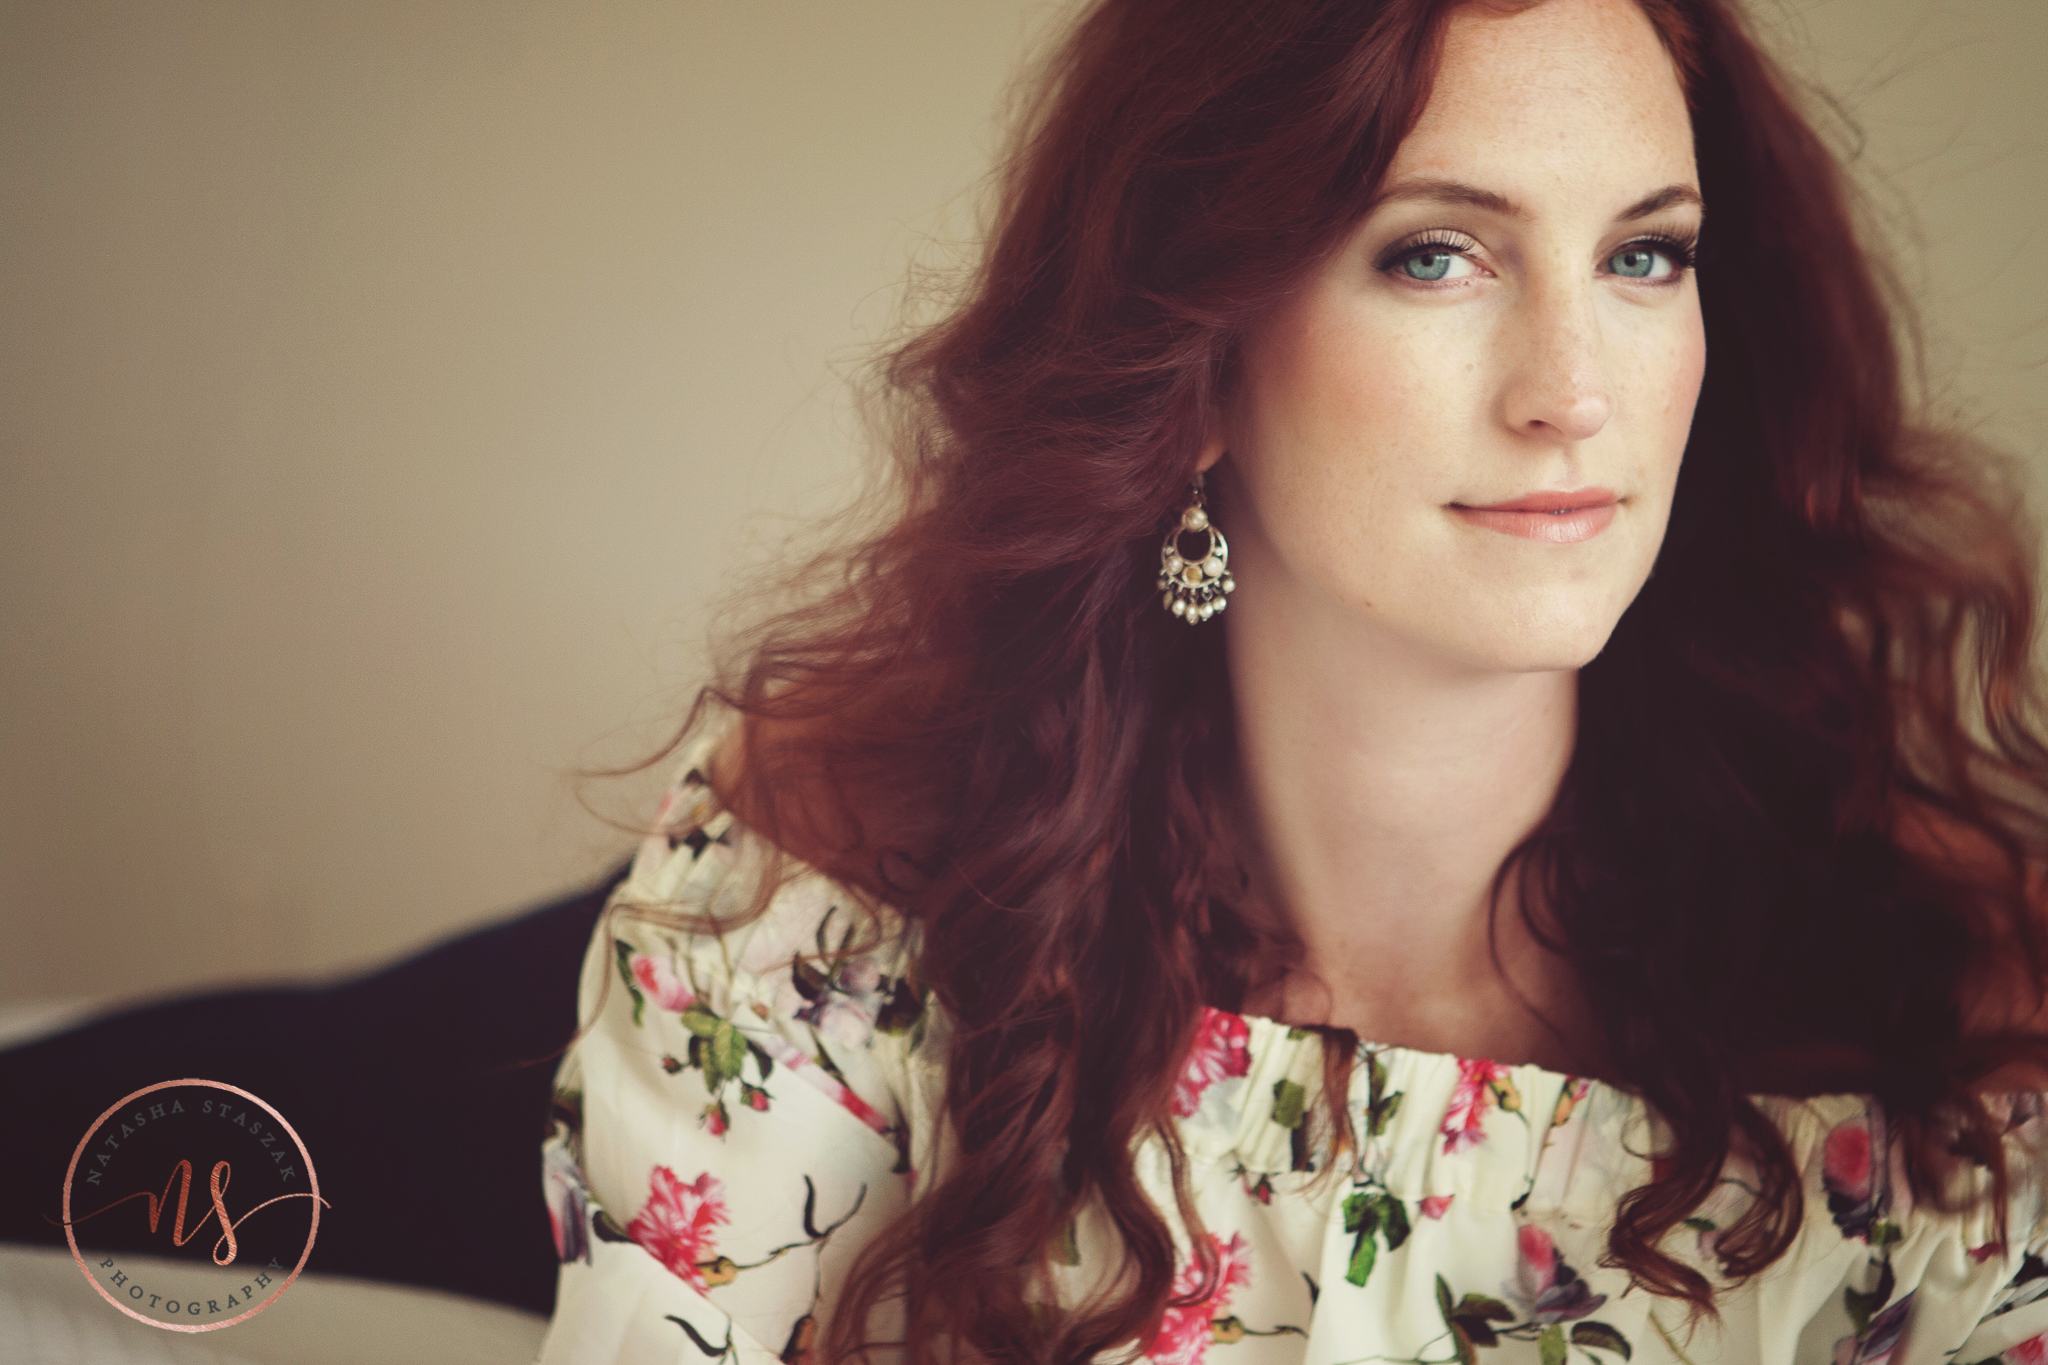 Beautiful portrait ofCortney Chyme with red hair and floral top in Buffalo NY